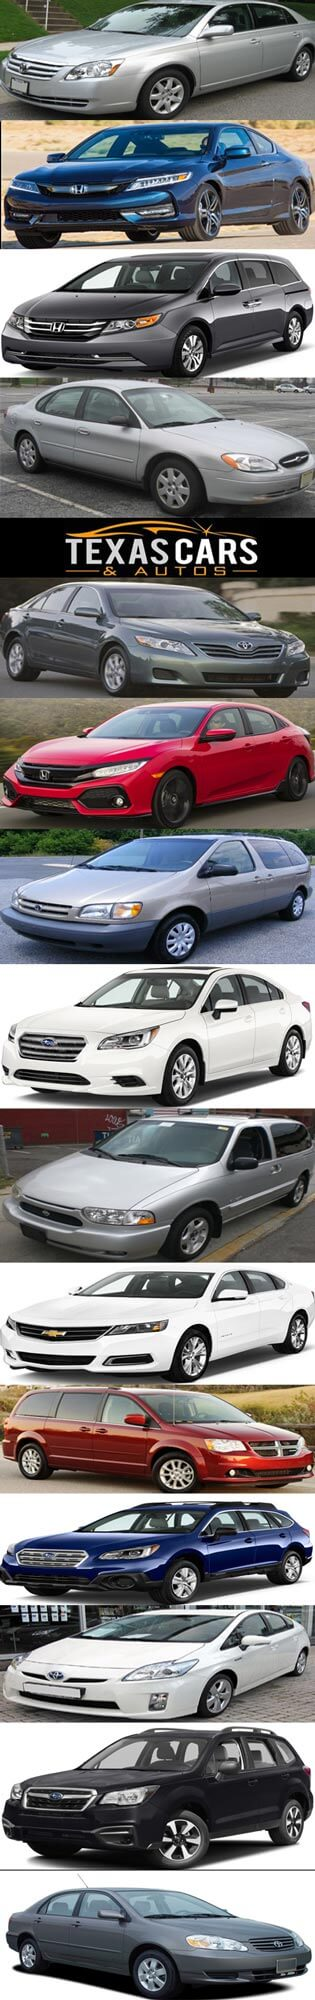 Used Cars For Sale That Can Handle High Mileage